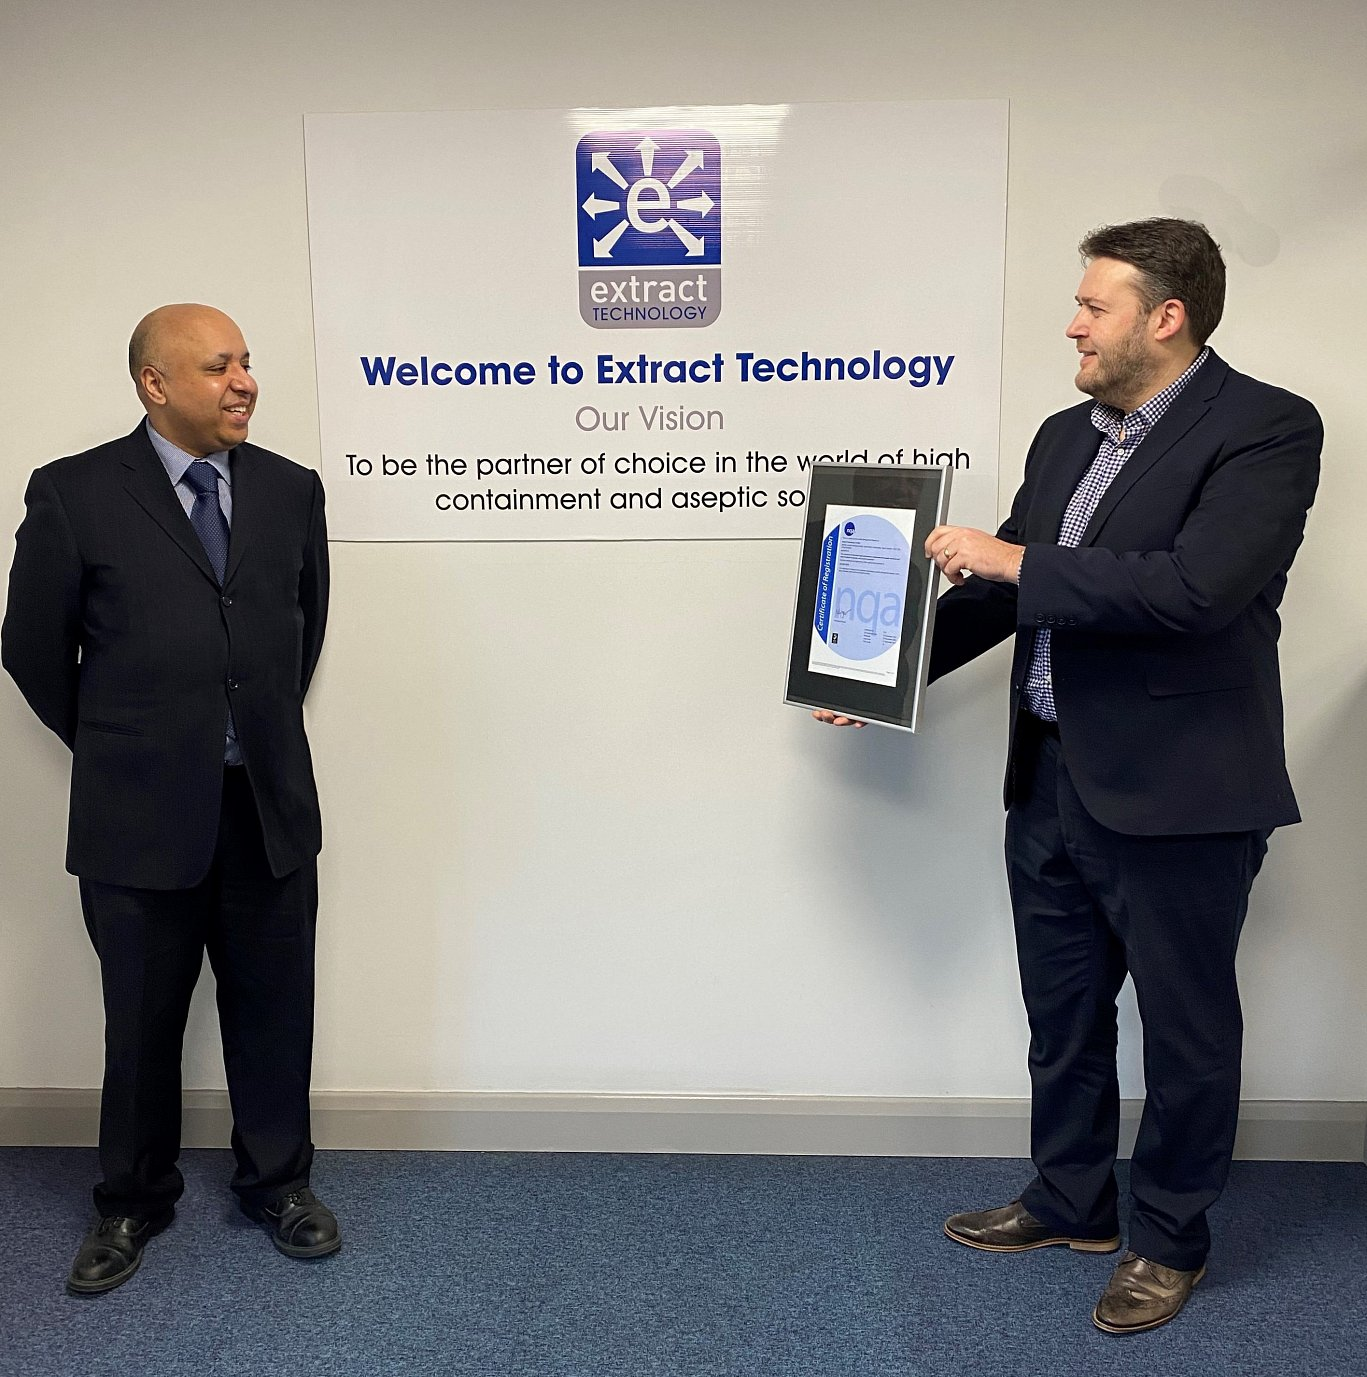 Extract Technology are pleased to announce their ISO 9001:2015 reaccreditation with the NQA (National Quality Assurance)